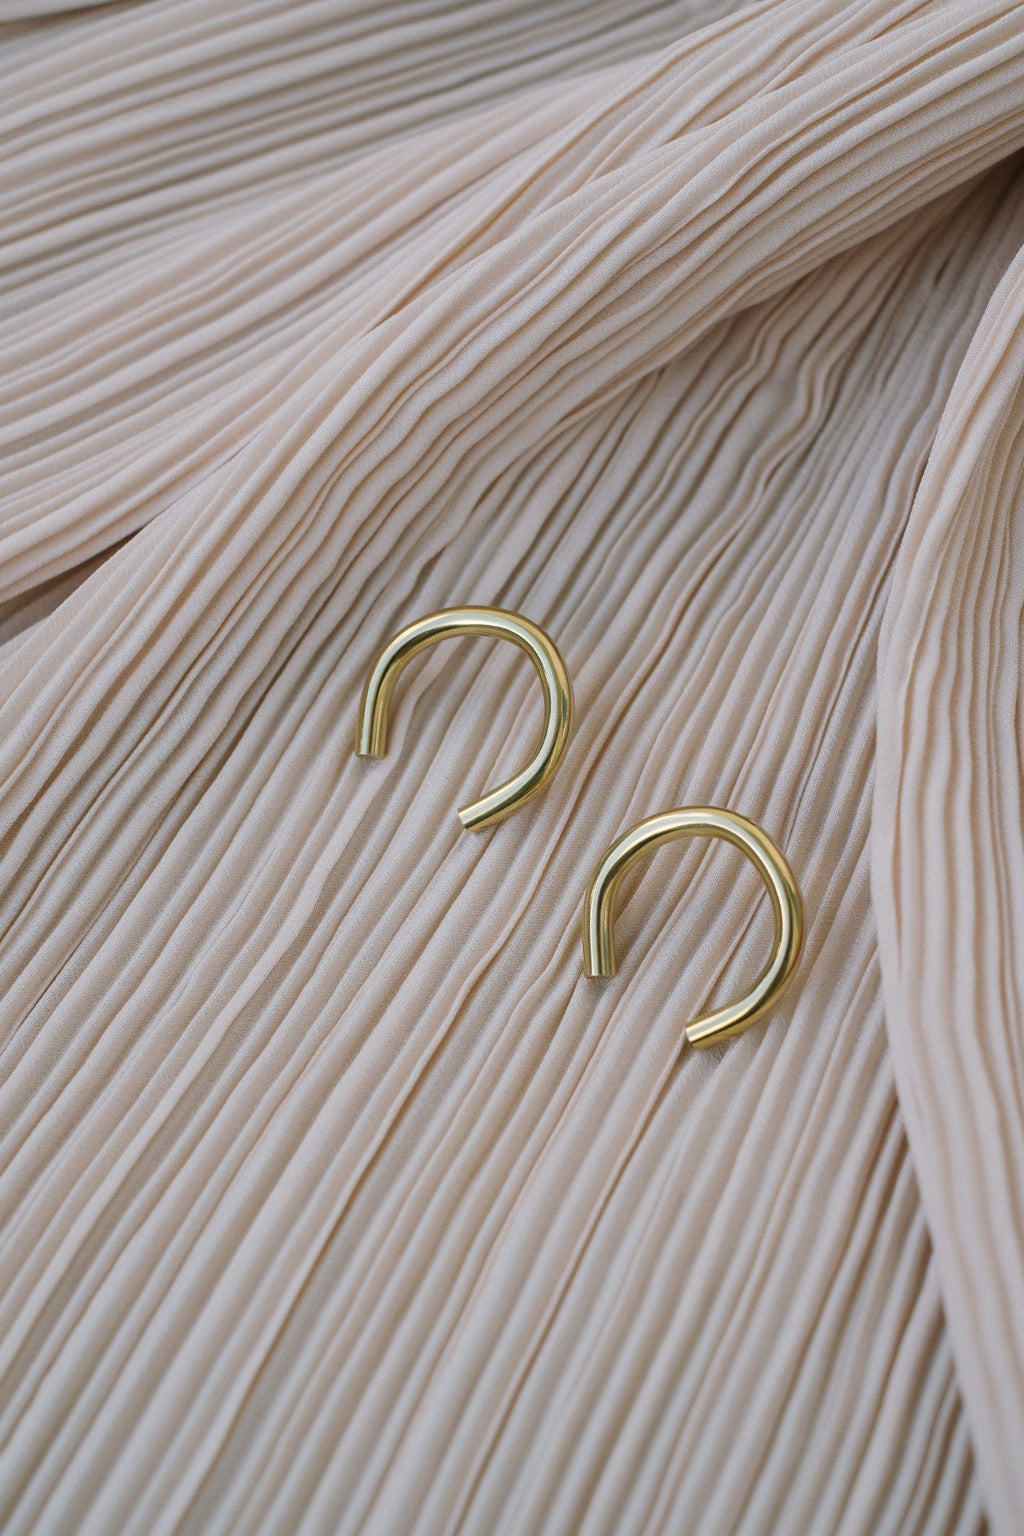 C earrings N°2